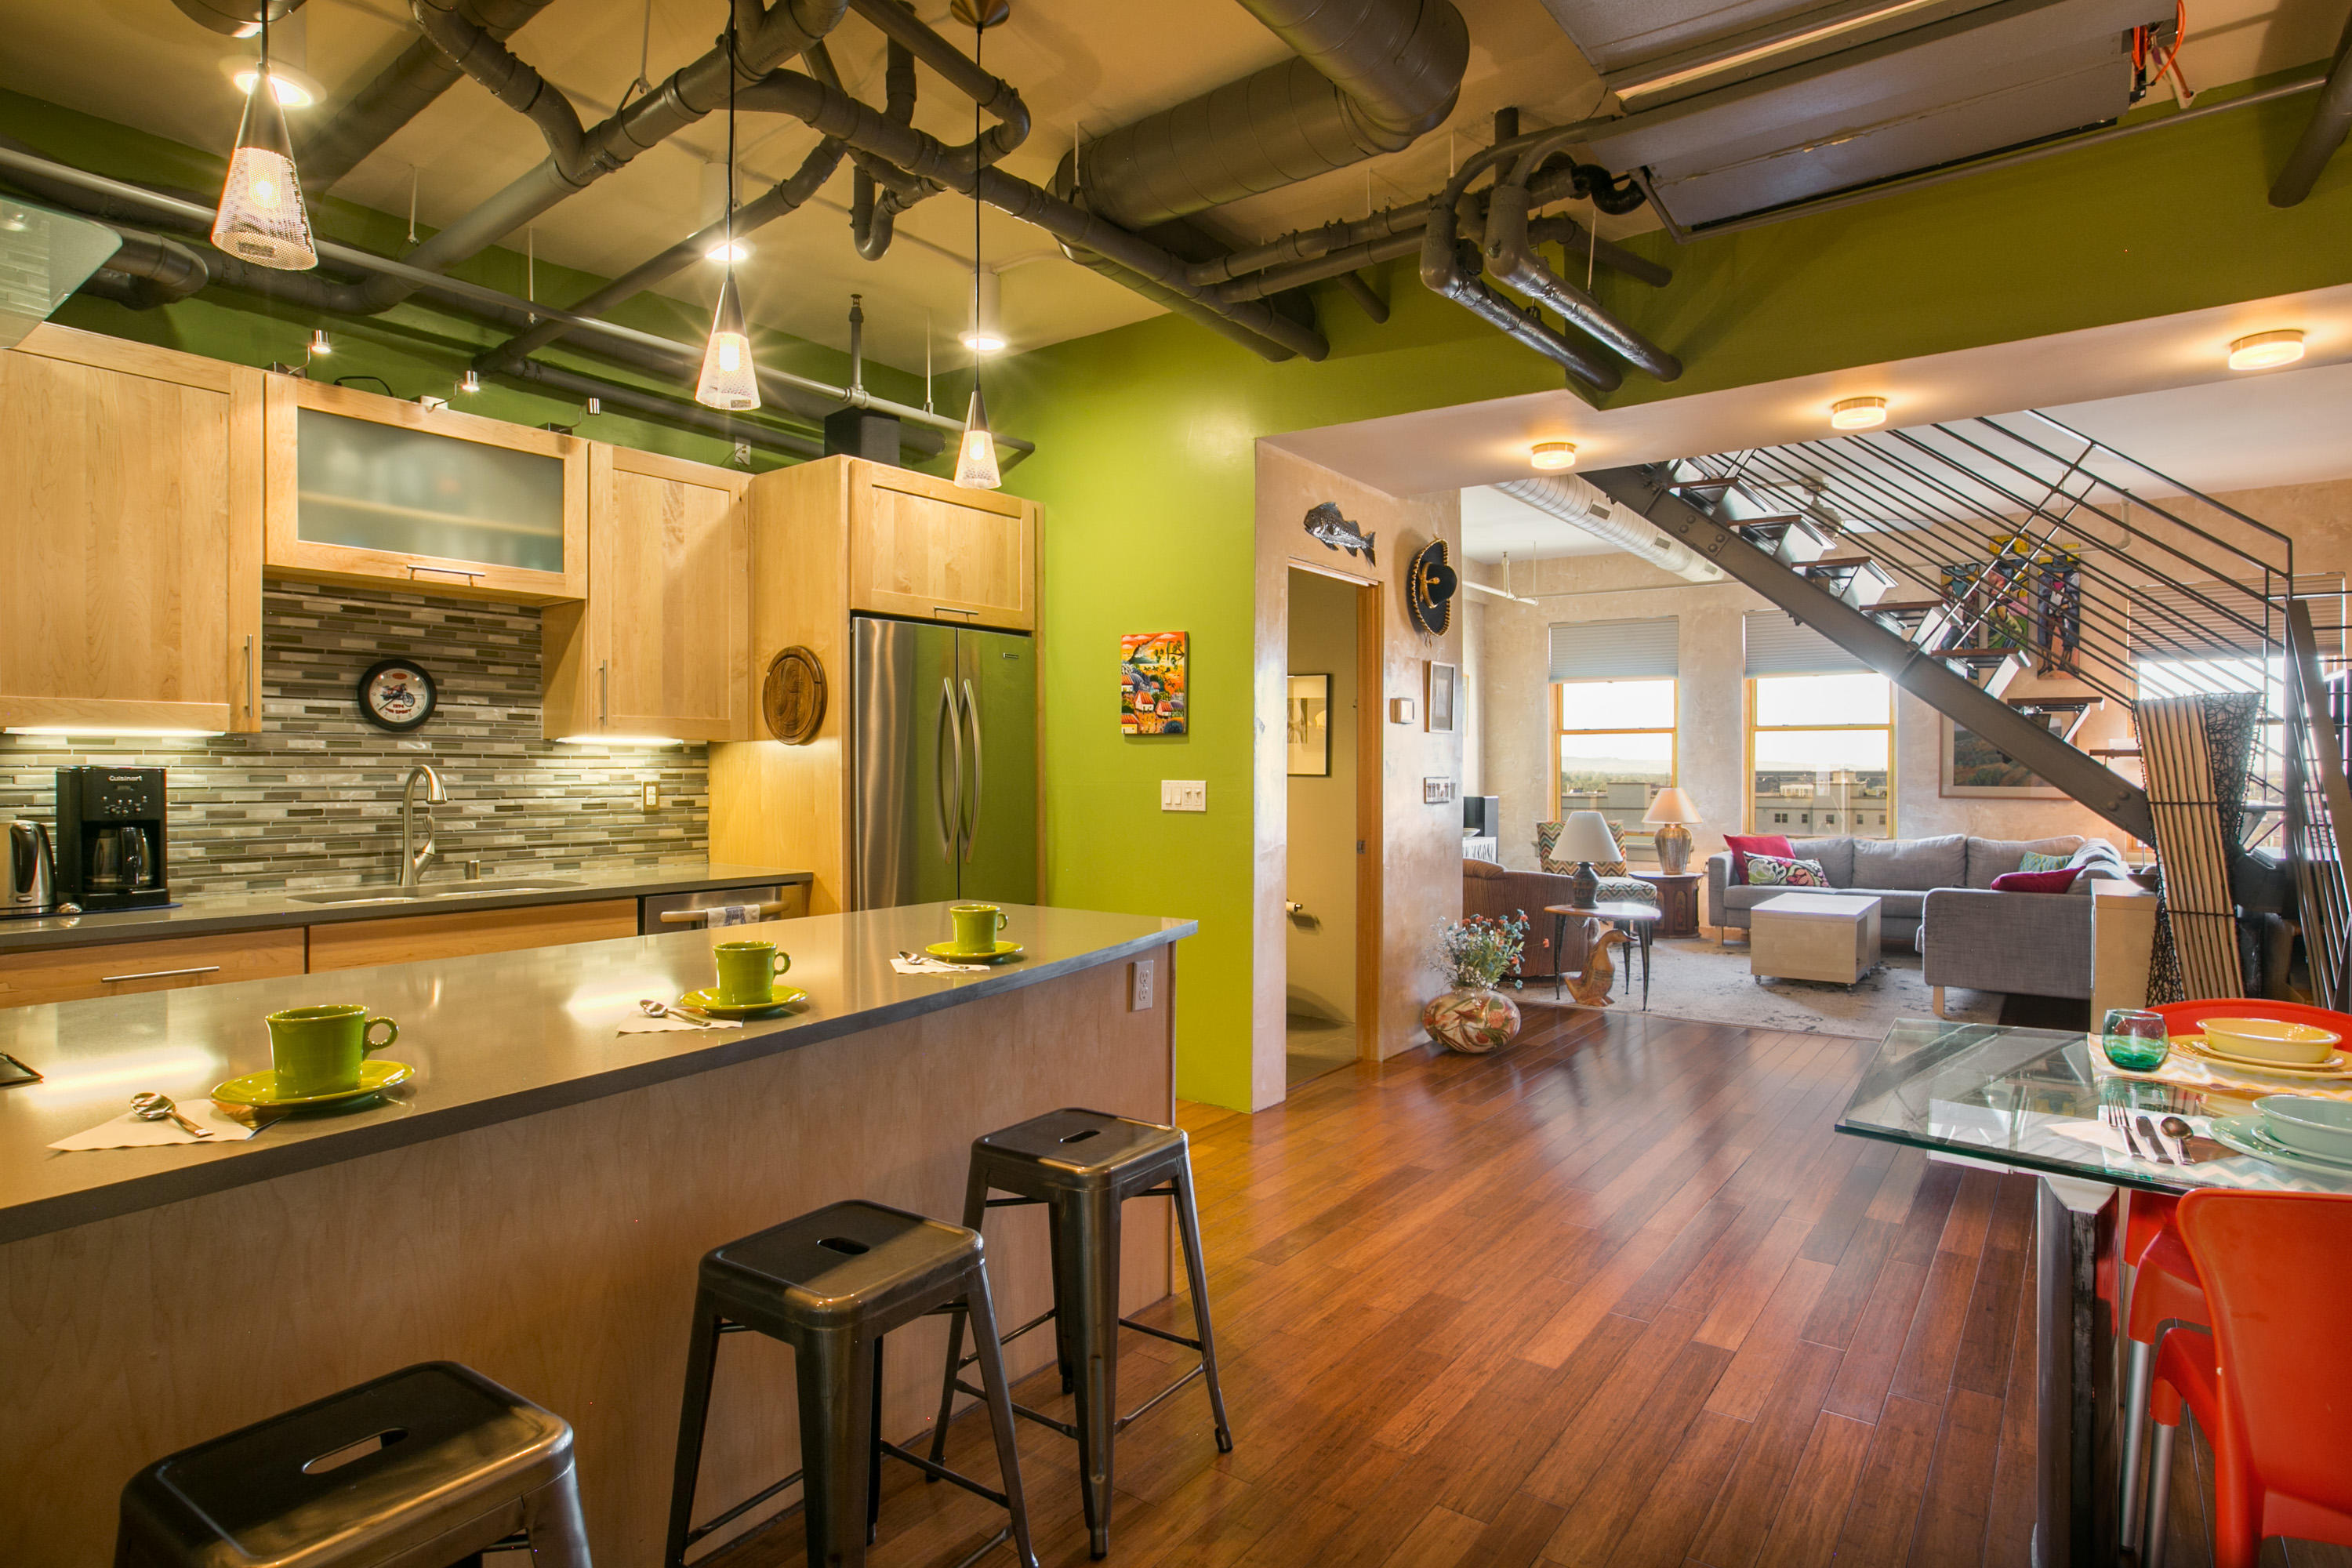 Located in the Heart of Downtown ABQ in the secure key card access old Sunrise Bank building.  This 2 level unit is beautifully appointed with modern fixtures, lighting and materials.  The kitchen features stainless steel appliances and custom cabinetry.  A half bath is located on the first floor.  Follow the steel and wood staircase to the 2nd floor where you'll find a master bedroom suite with a private patio, walk-in closet and spa style bath.  The large guestroom has beautiful south facing views.  Access to the 8.000+sqft rooftop deck with expansive panoramic views of the city and mountains!  5th floor garage access parking is optional.